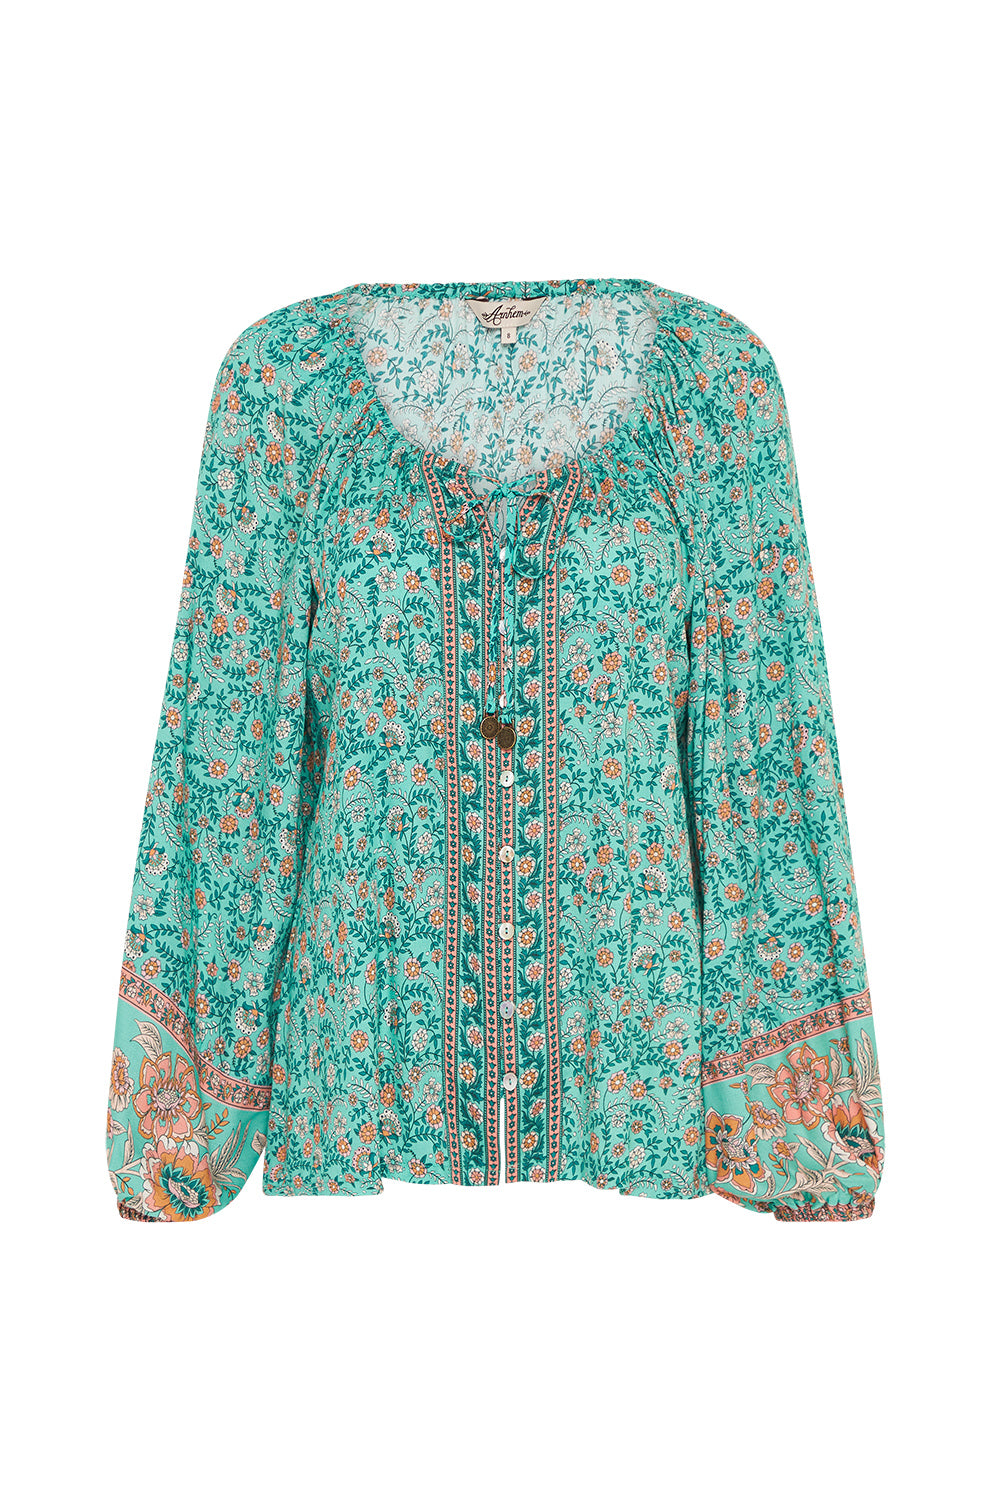 Fleetwood Blouse in Greenfields